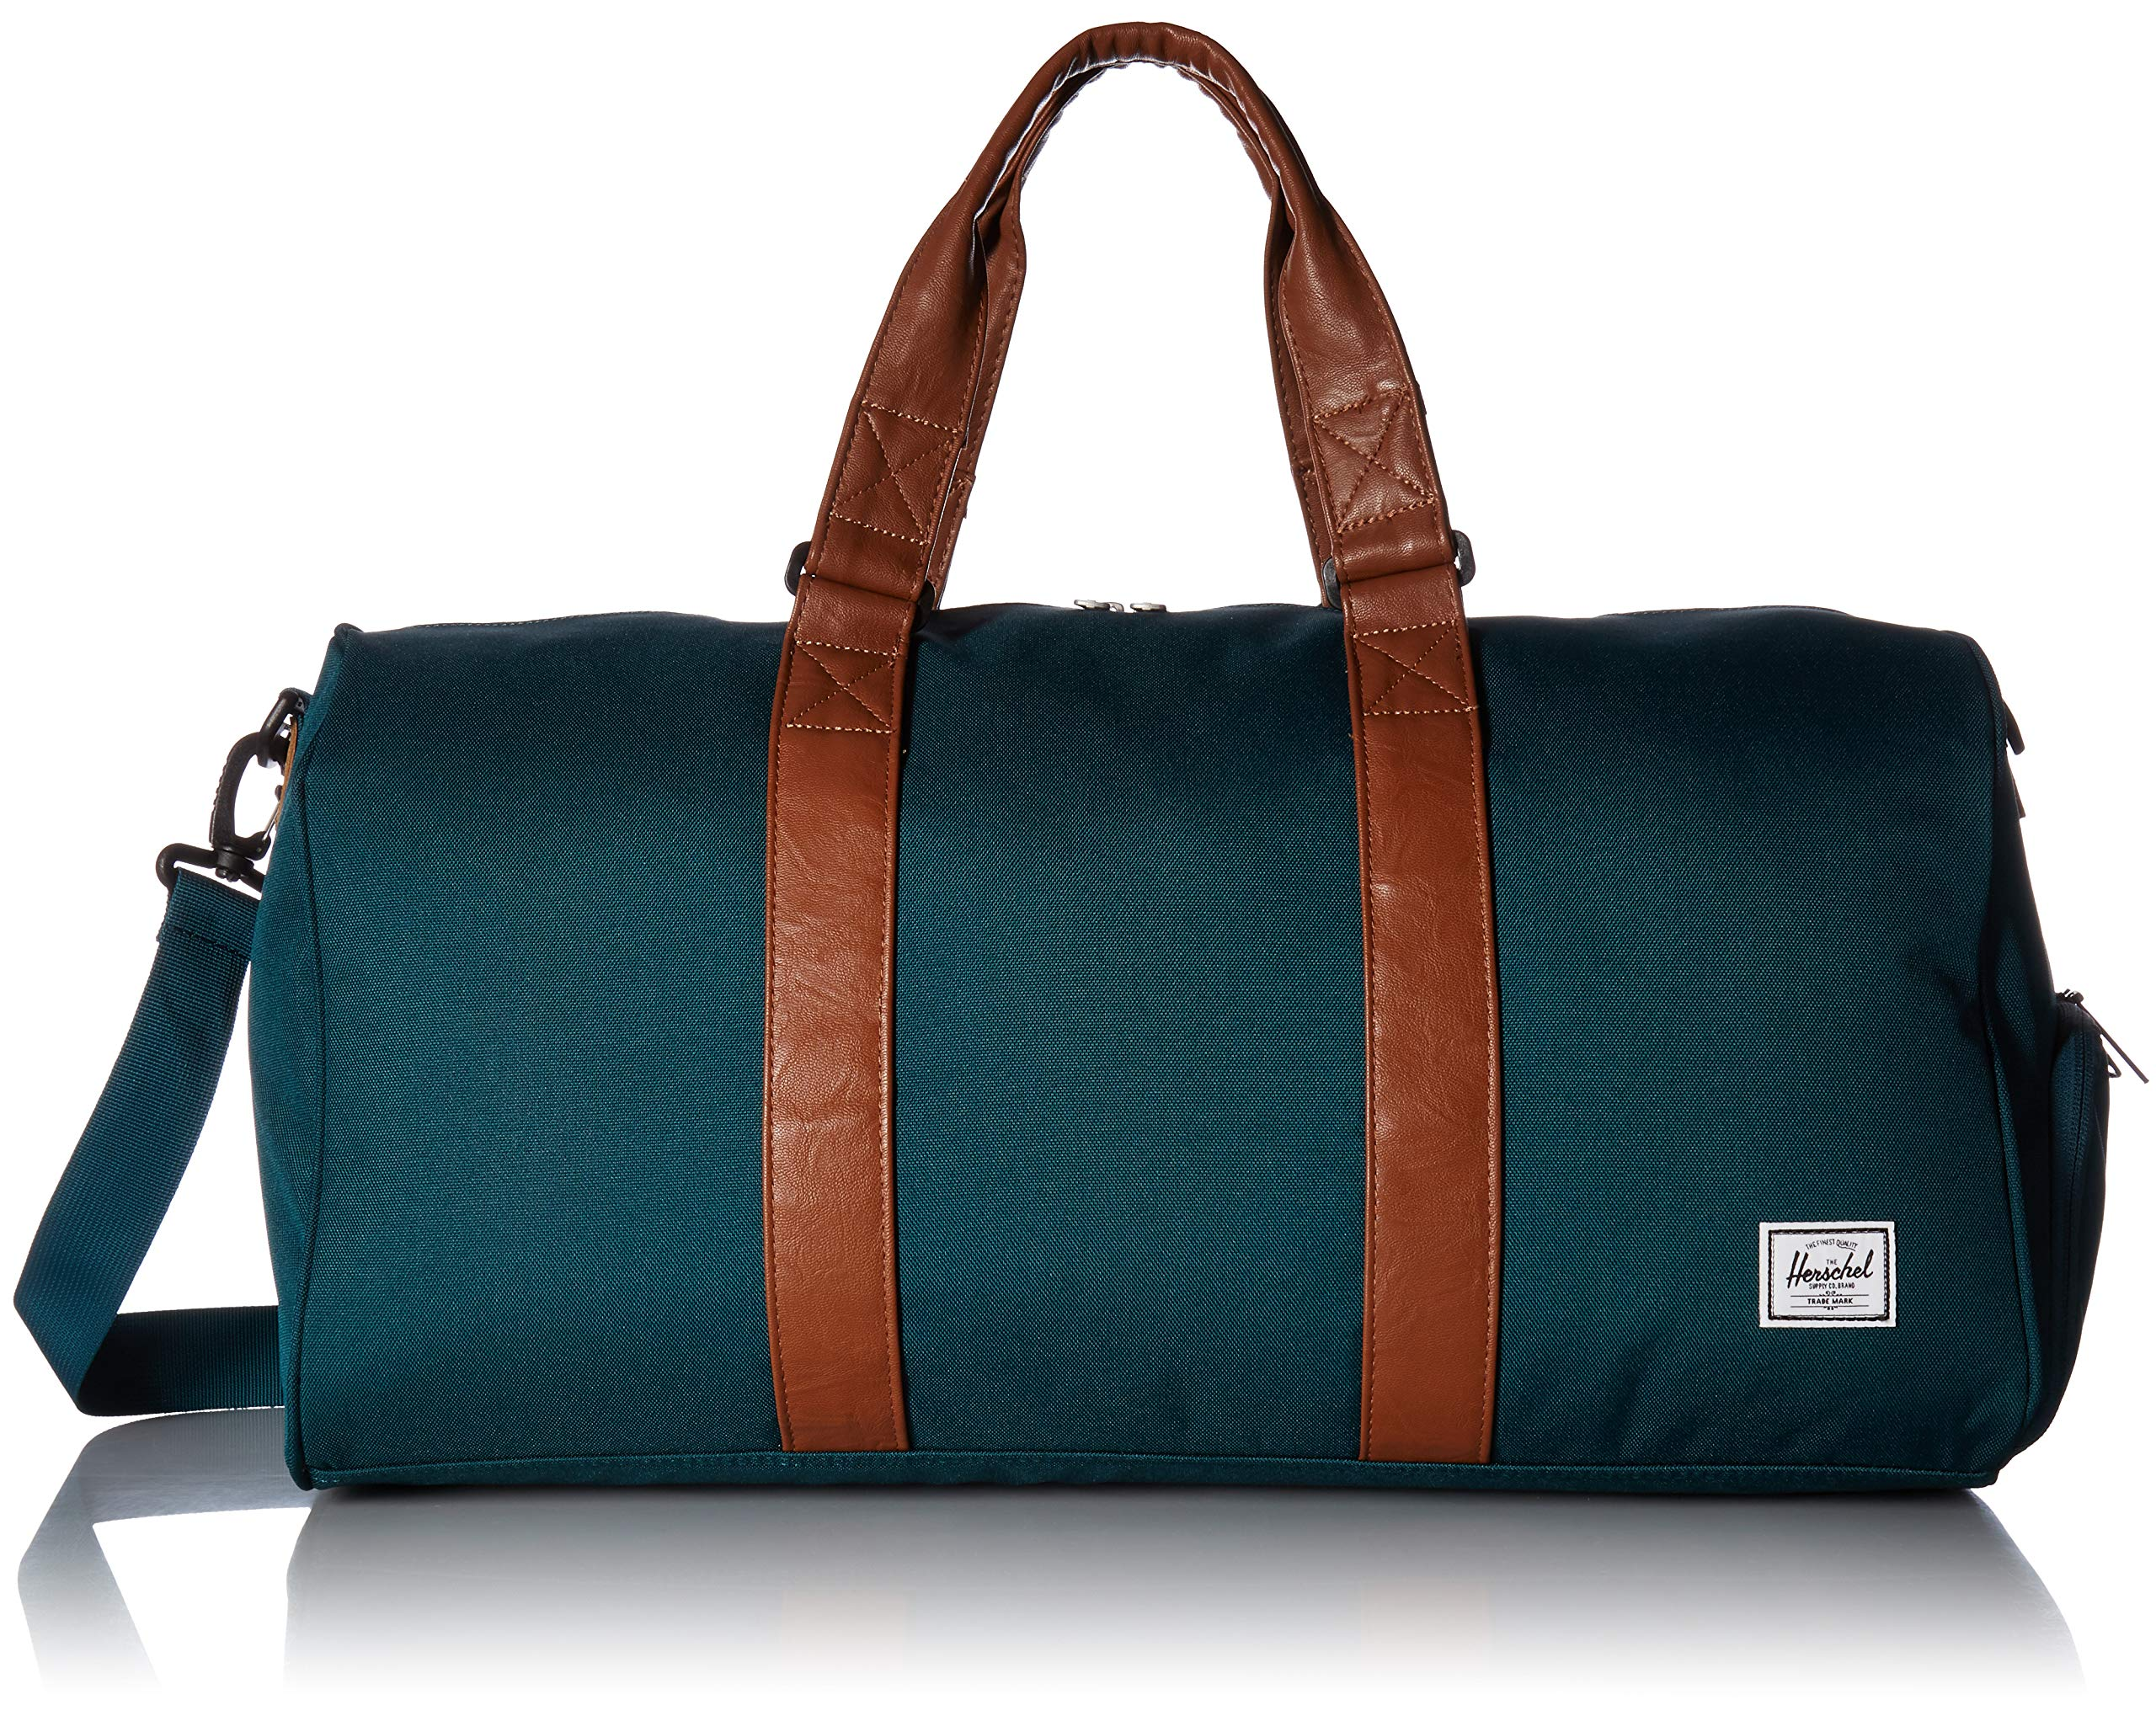 Herschel Supply Co. Novel Mid-Volume Duffel Bag, Deep Teal/Tan Synthetic Leather, One Size